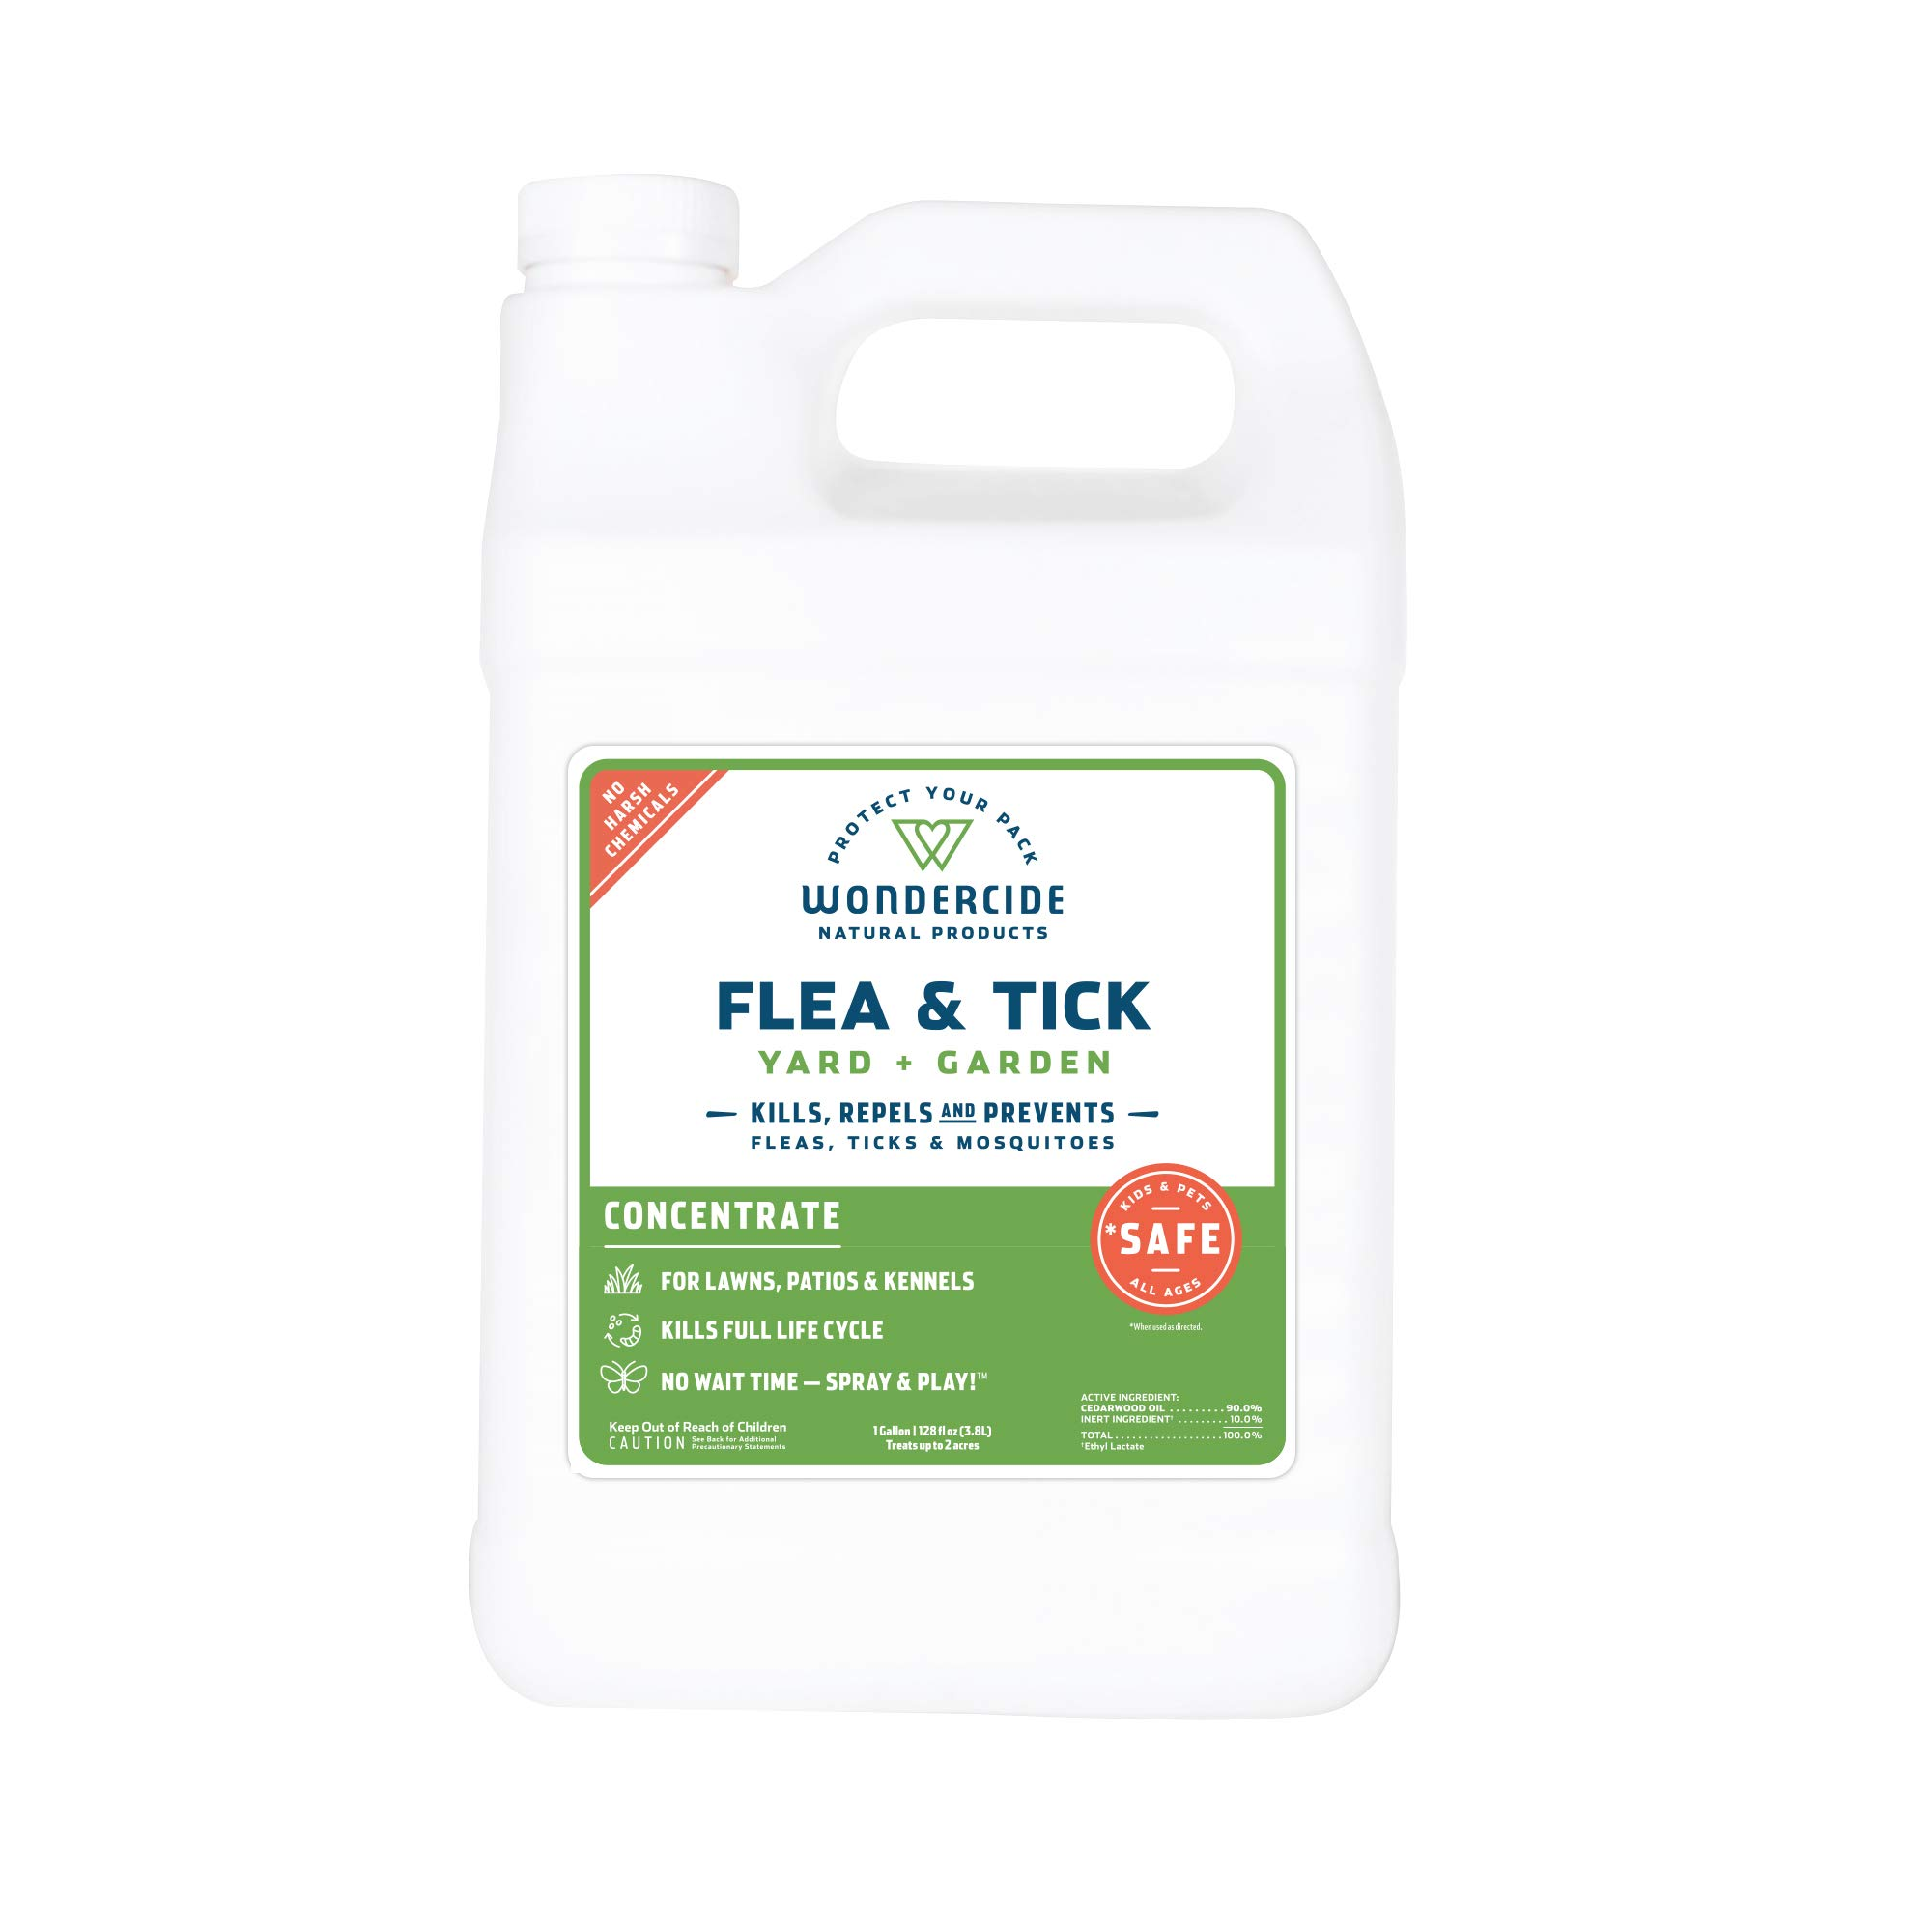 Wondercide Natural Flea and Tick Yard Garden Spray | Kill, Control, Prevent Fleas, Ticks, Mosquitoes & Insects - Natural Concentrate Safe Around Kids, Pets, Plants - 32 oz by Wondercide